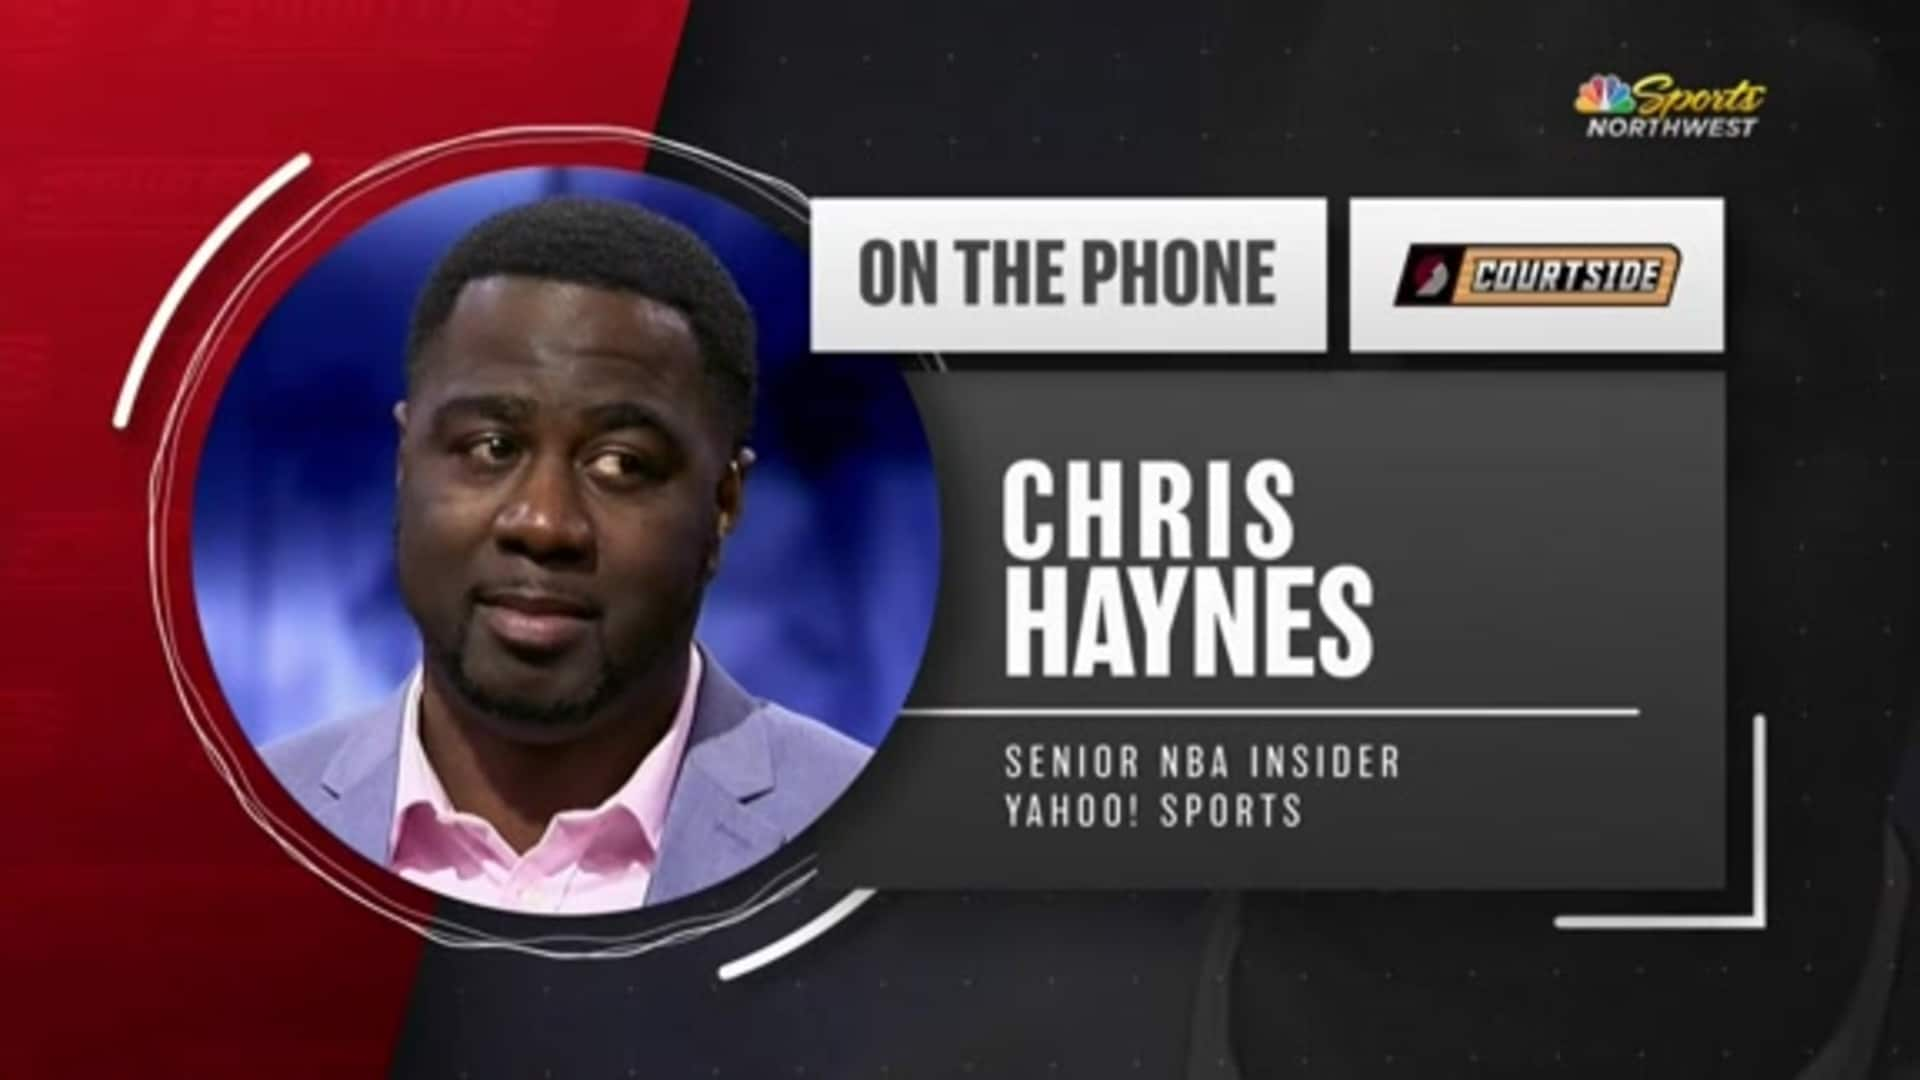 Chris Haynes Joins Trail Blazers Courtside